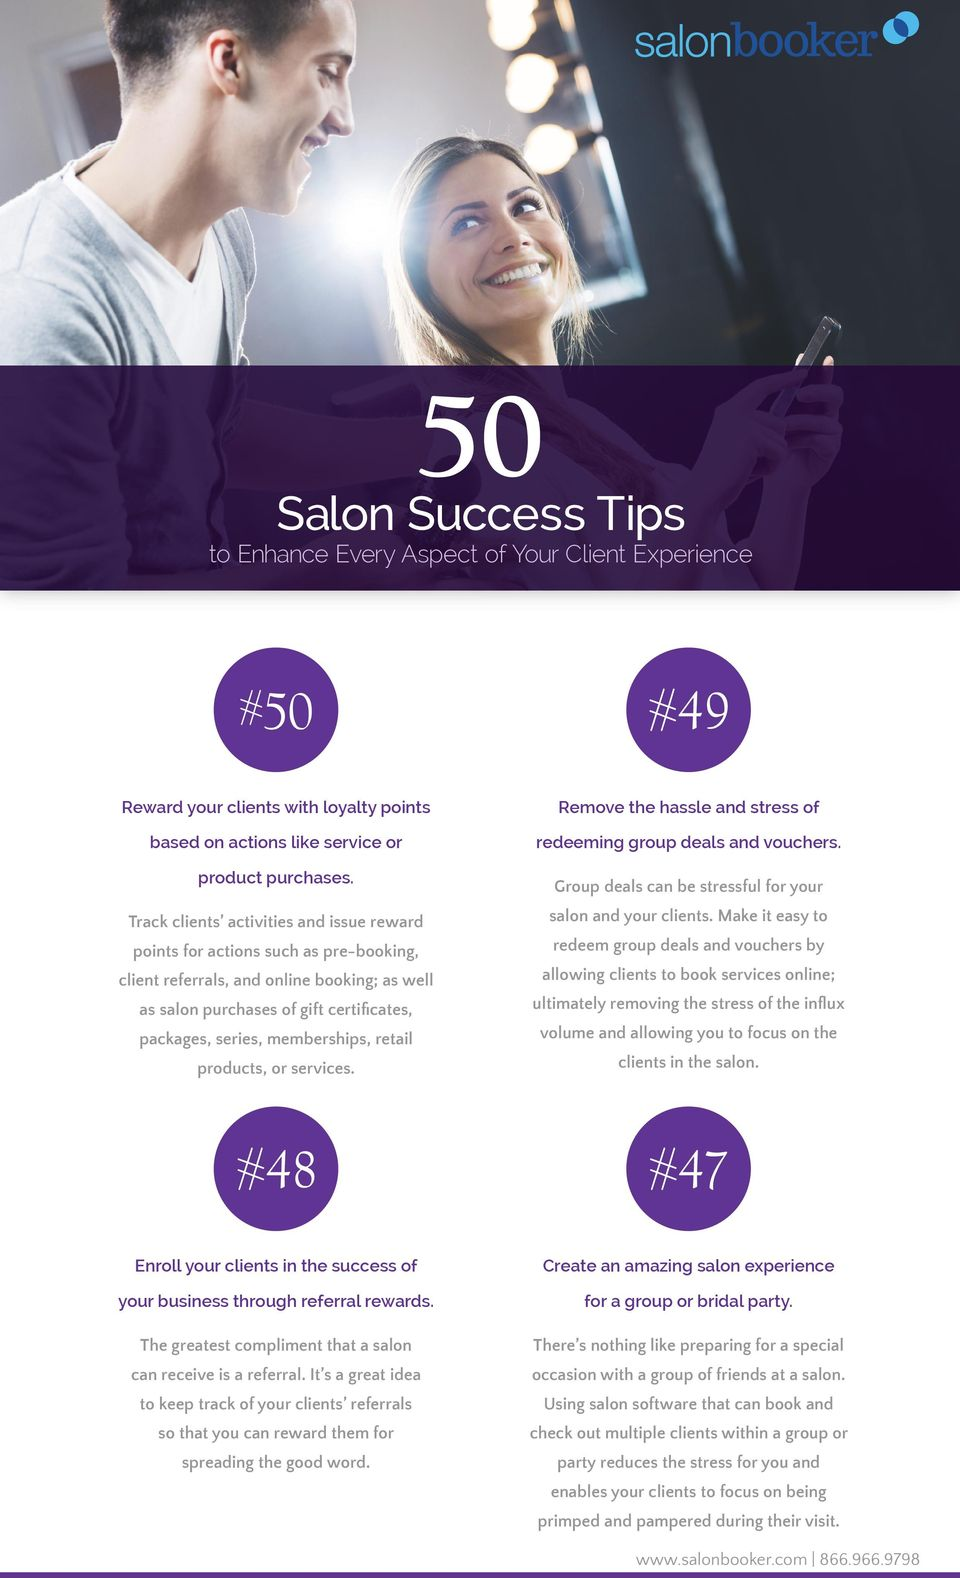 Make it easy to points for actions such as pre-booking, redeem group deals and vouchers by client referrals, and online booking; as well allowing clients to book services online; as salon purchases